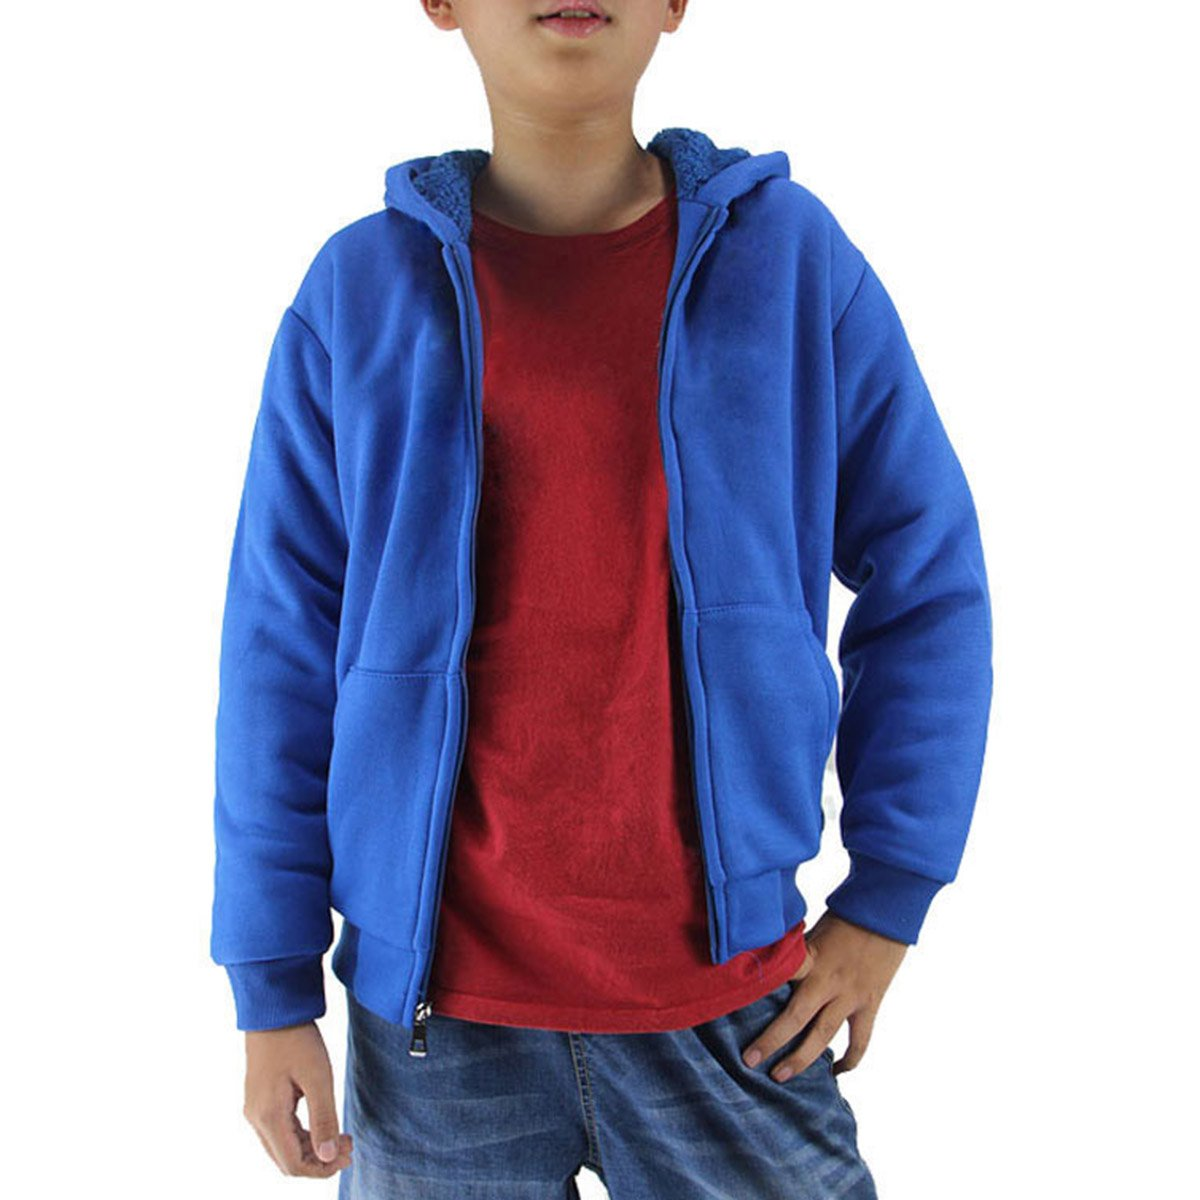 Eurogarment Youth Full Zip Sherpa Lined Fleece Hoodie for Boys Winter Warm Outdoor Sweatshirts with Pouch Pocket